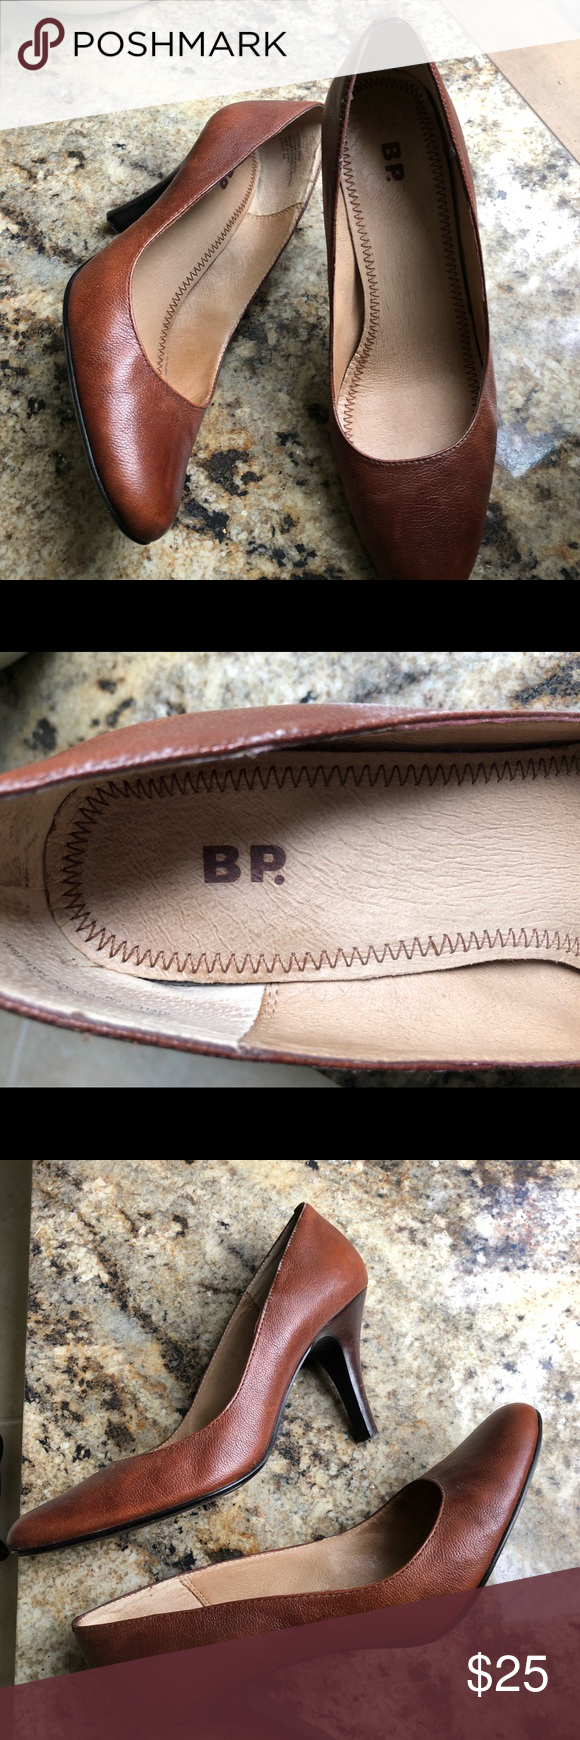 97d6011d46fb Vintage BP (Nordstrom) pumps Brown pumps from BP! Good used condition. BP  Shoes Heels